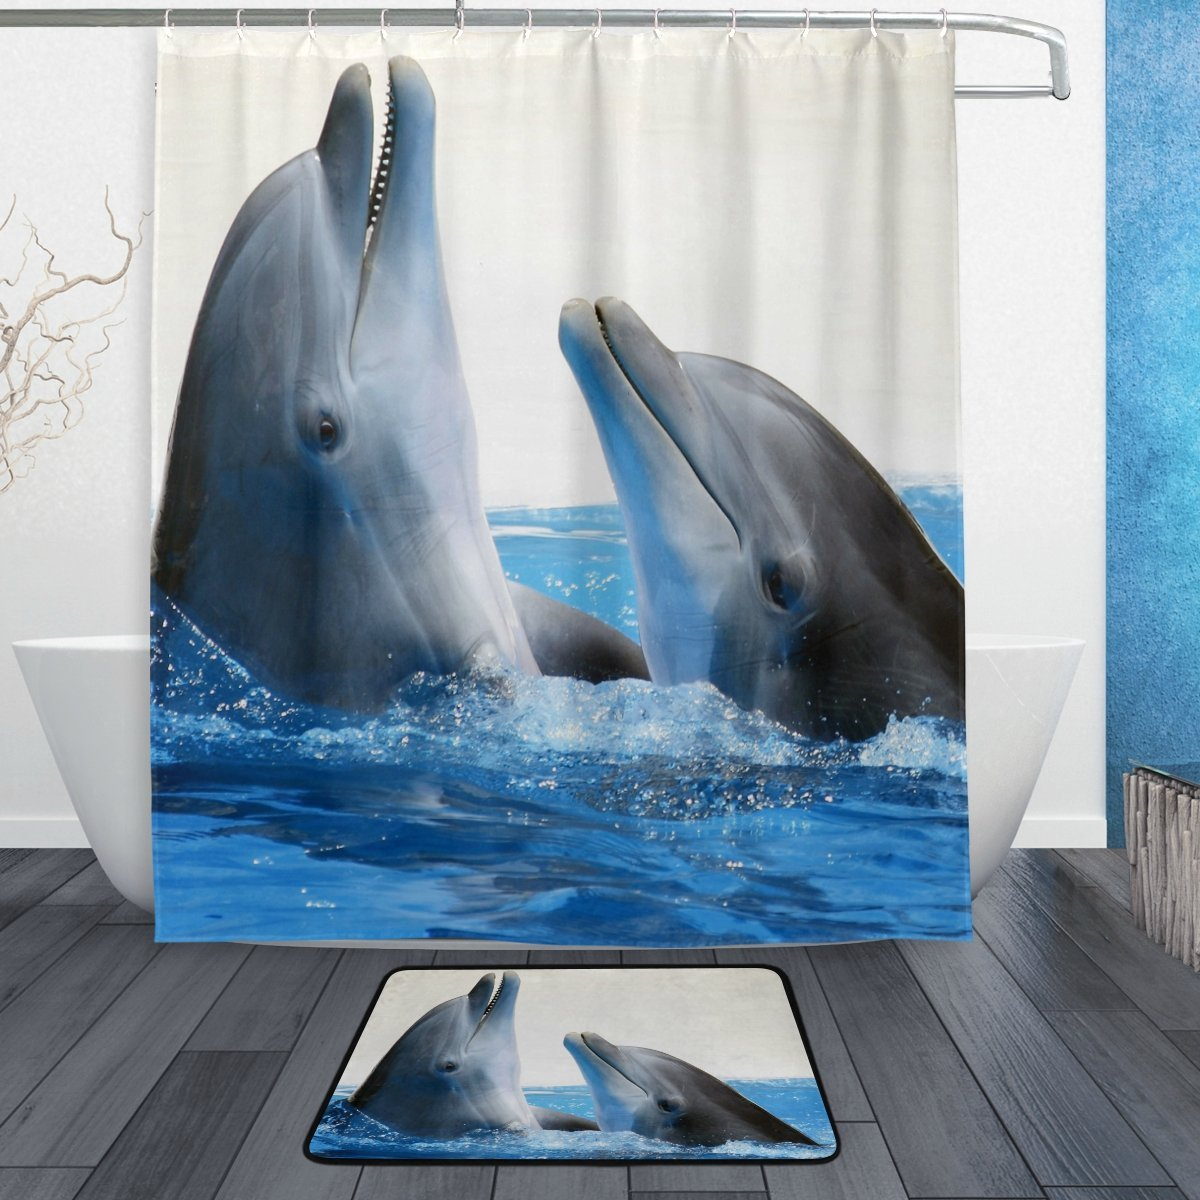 Ocean Sea Dolphin Shower Curtain And Mat Set Cute Sea